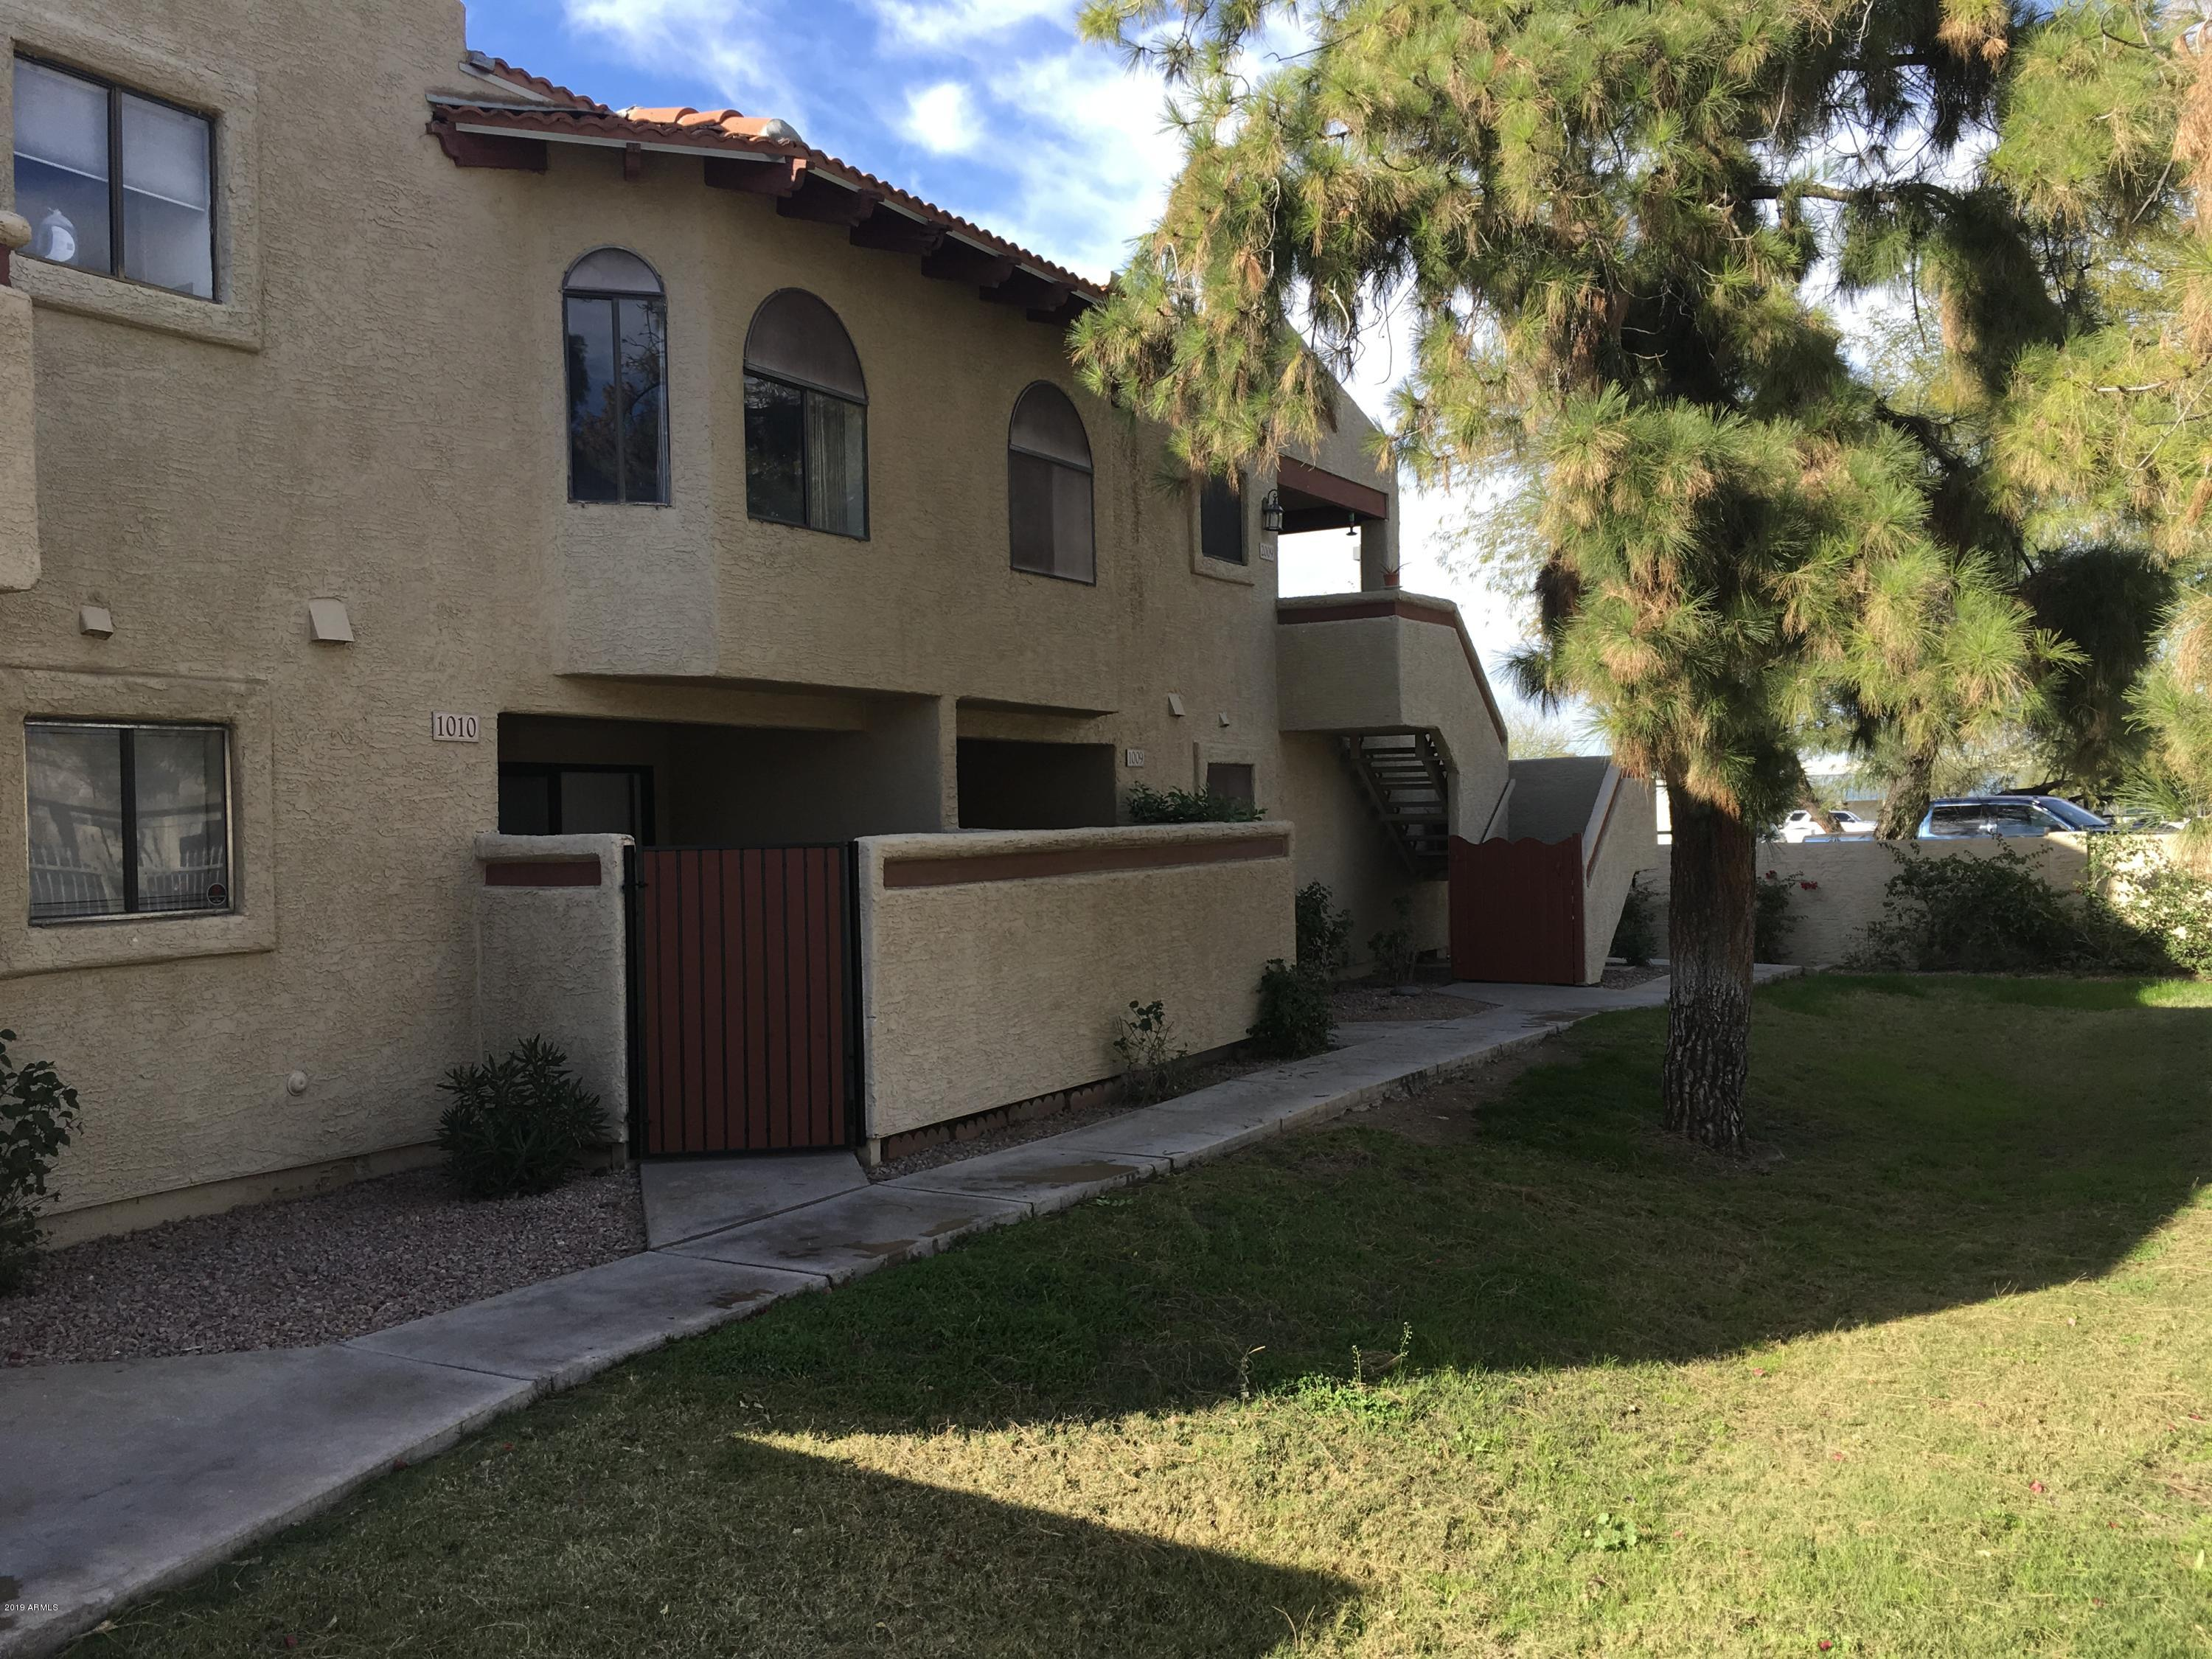 Photo of 850 S River Drive #1009, Tempe, AZ 85281